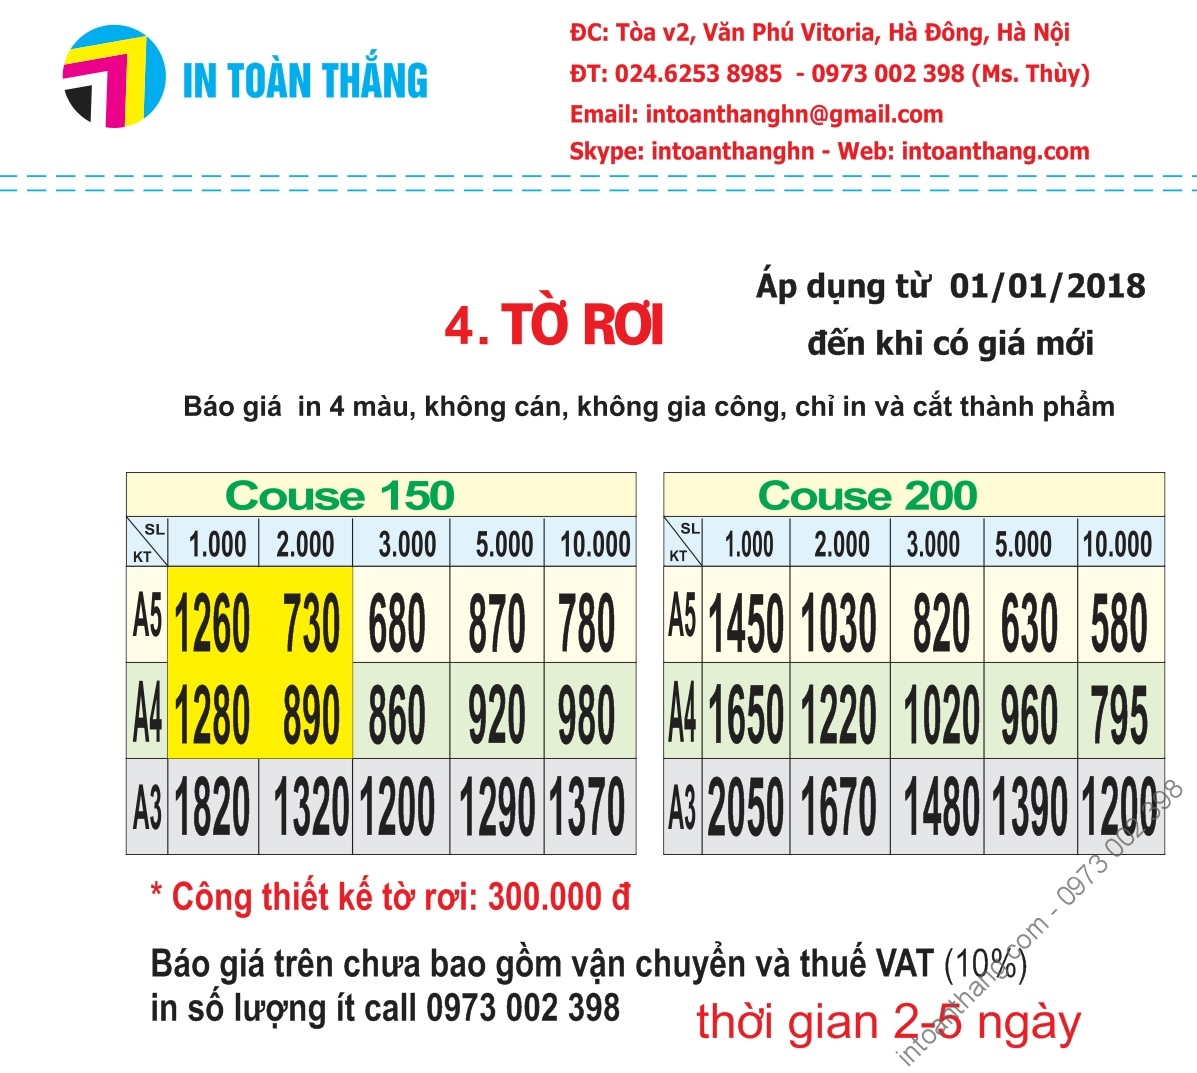 báo giá in tờ rơi, in tờ rơi, bao gia in to roi, in to roi